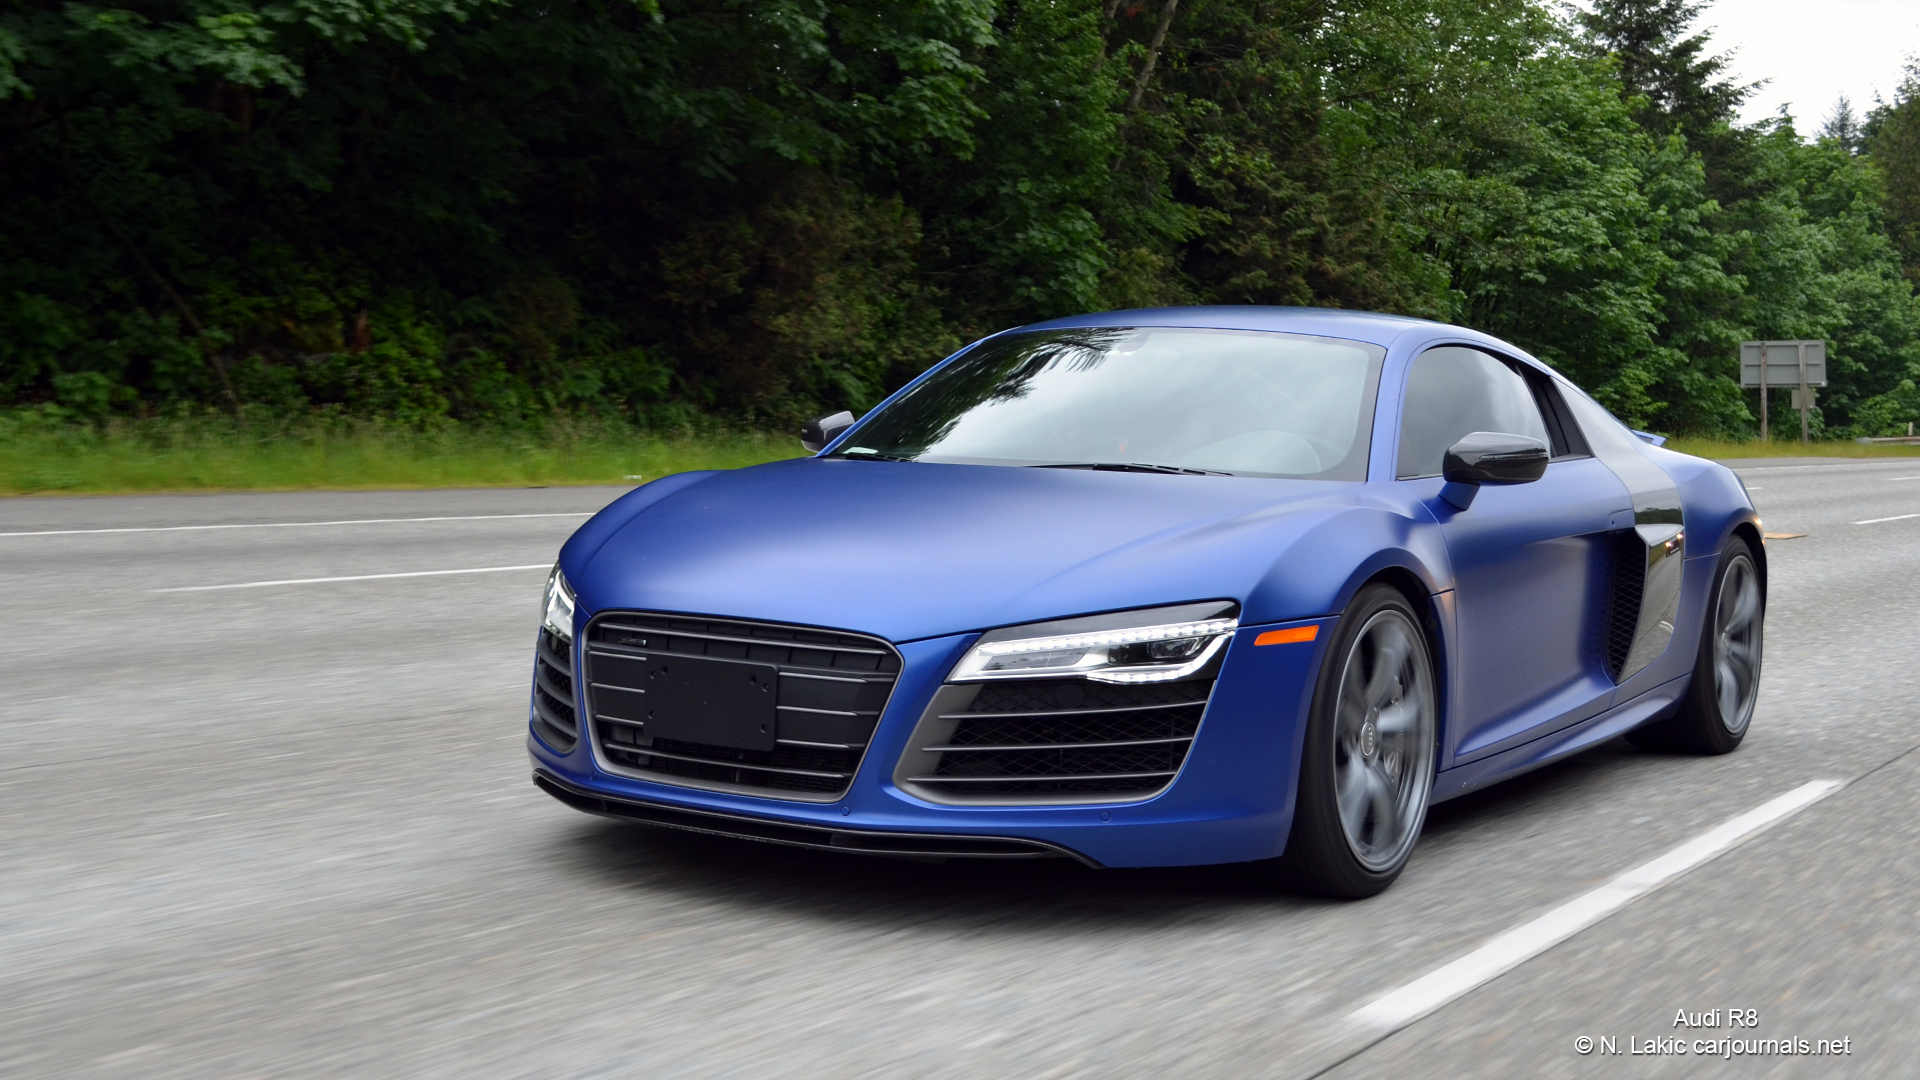 HD Car Wallpapers Blue Audi R8